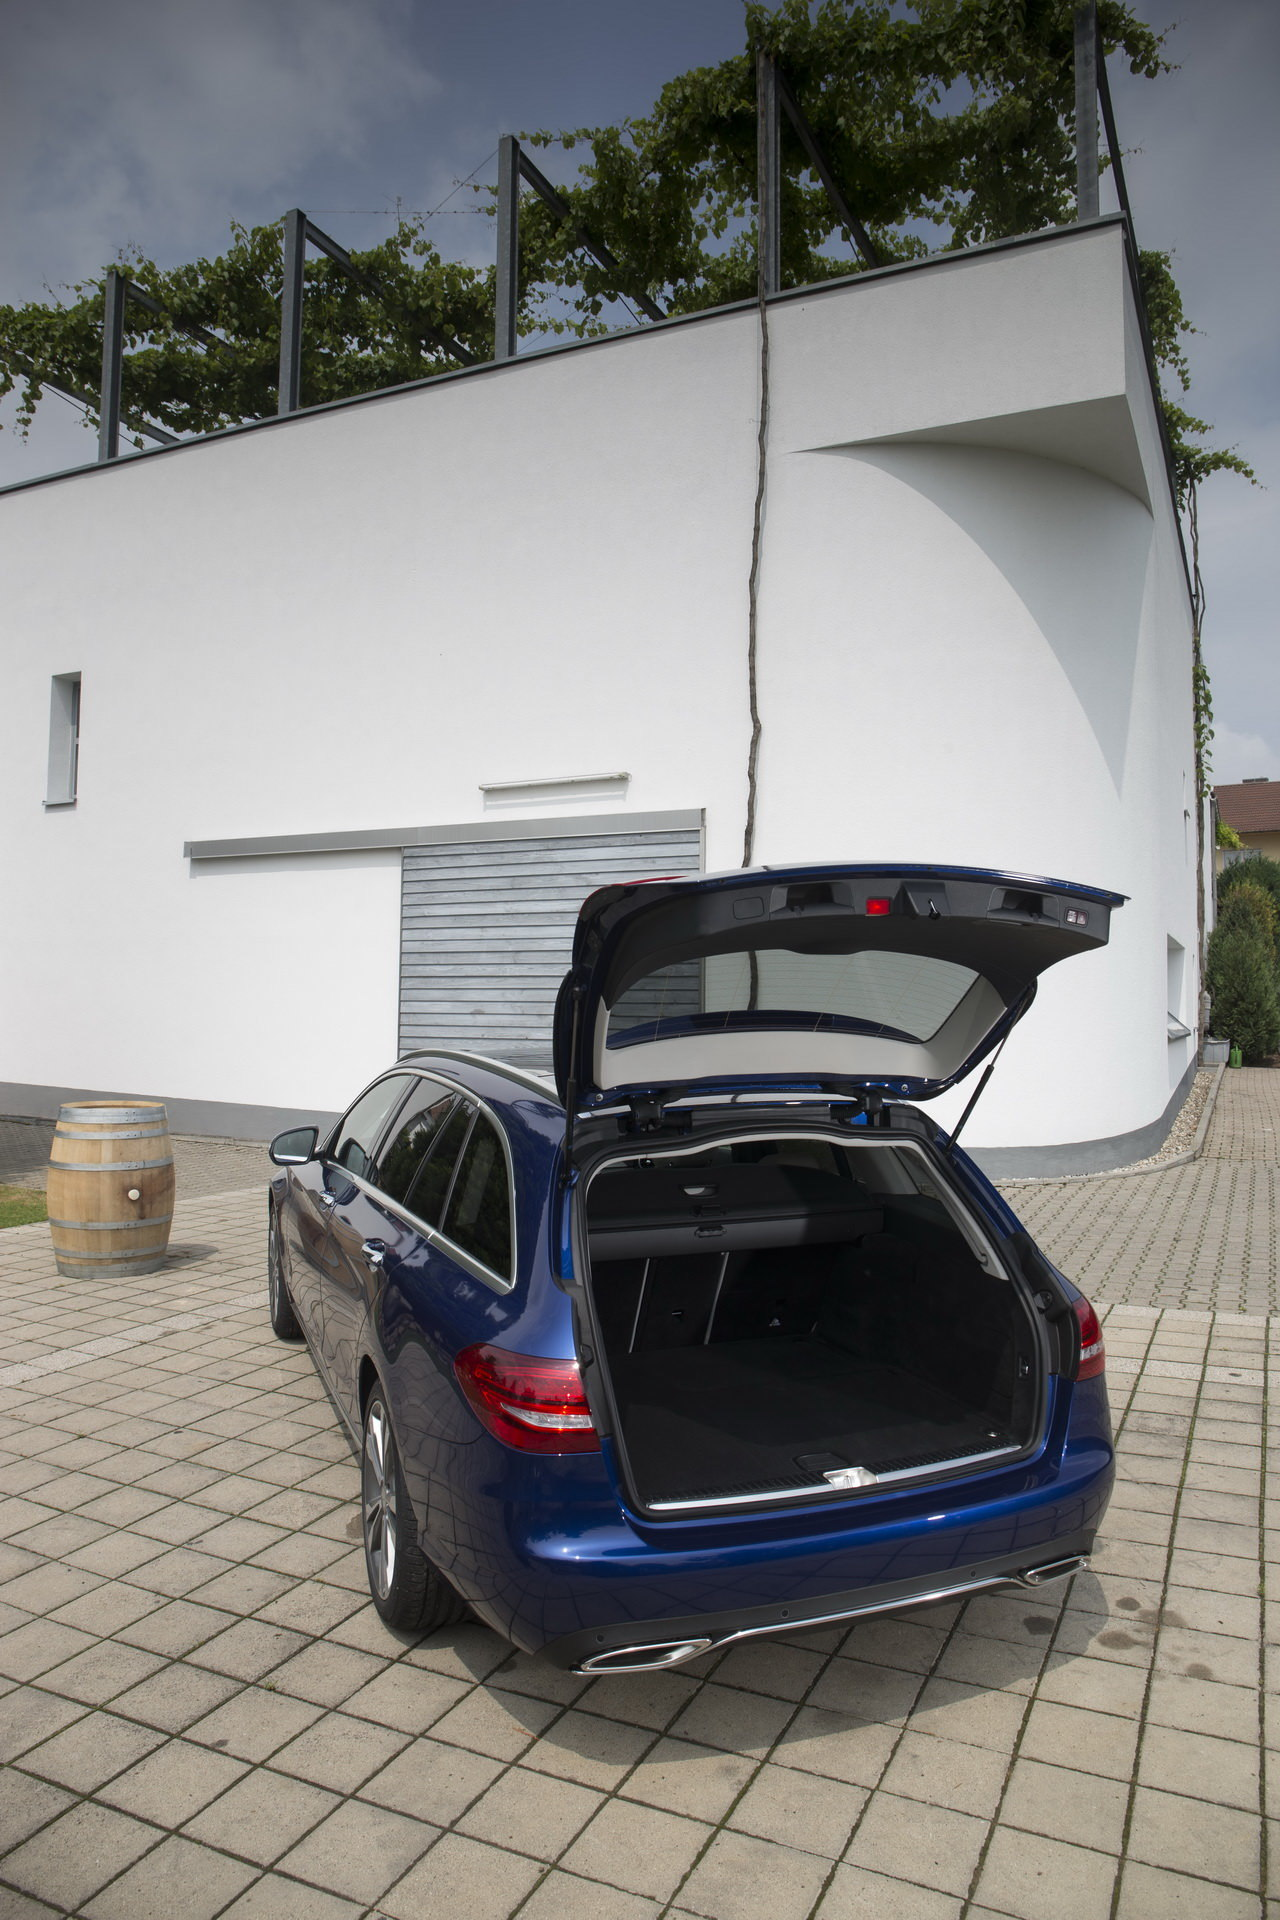 essai mercedes classe c 250 bluetec break bva7 2014 photo 30 l 39 argus. Black Bedroom Furniture Sets. Home Design Ideas